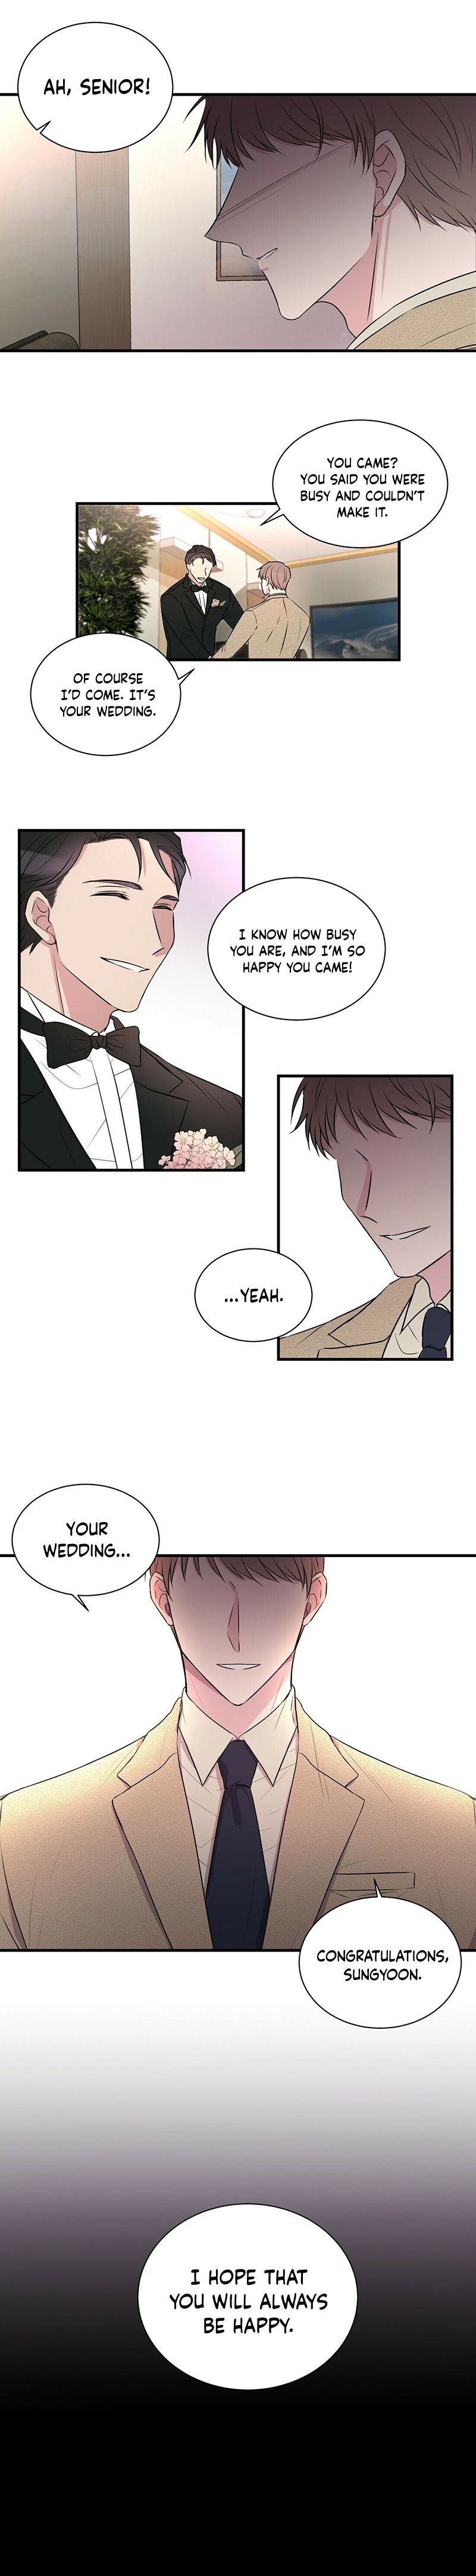 Contract Romance For An Ending - chapter 1 - #3